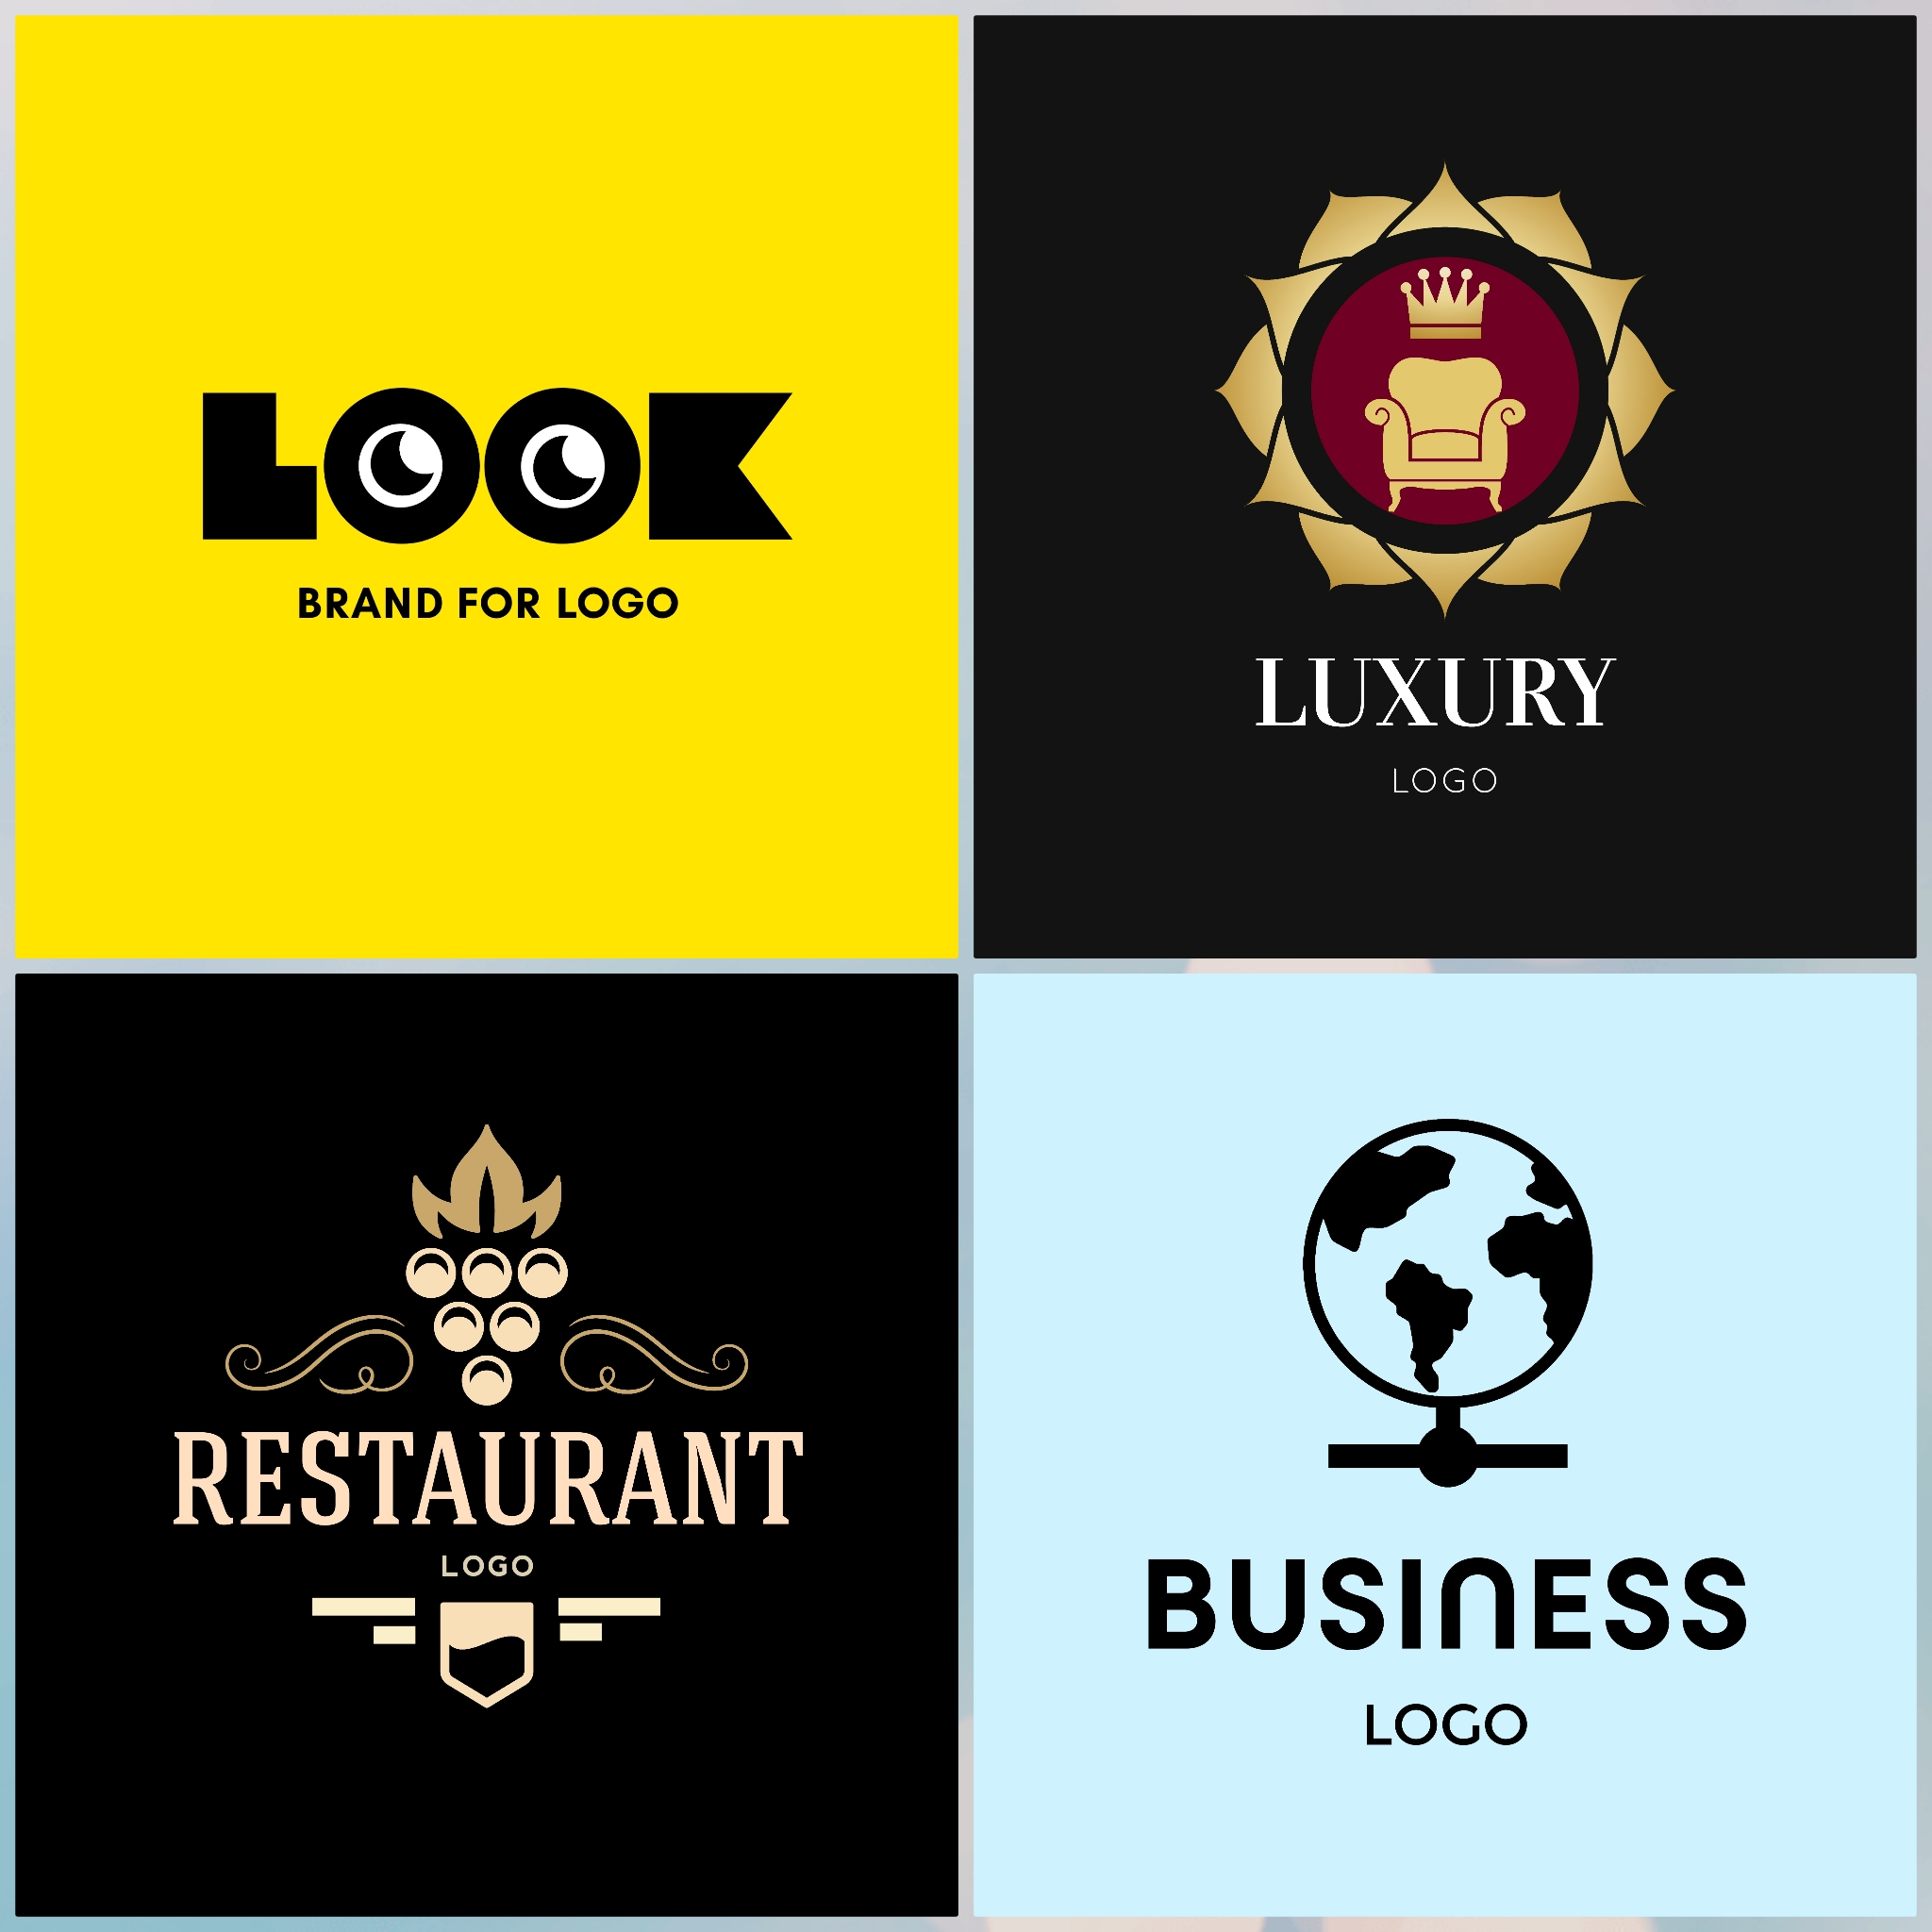 Our Studio will design unique company logo